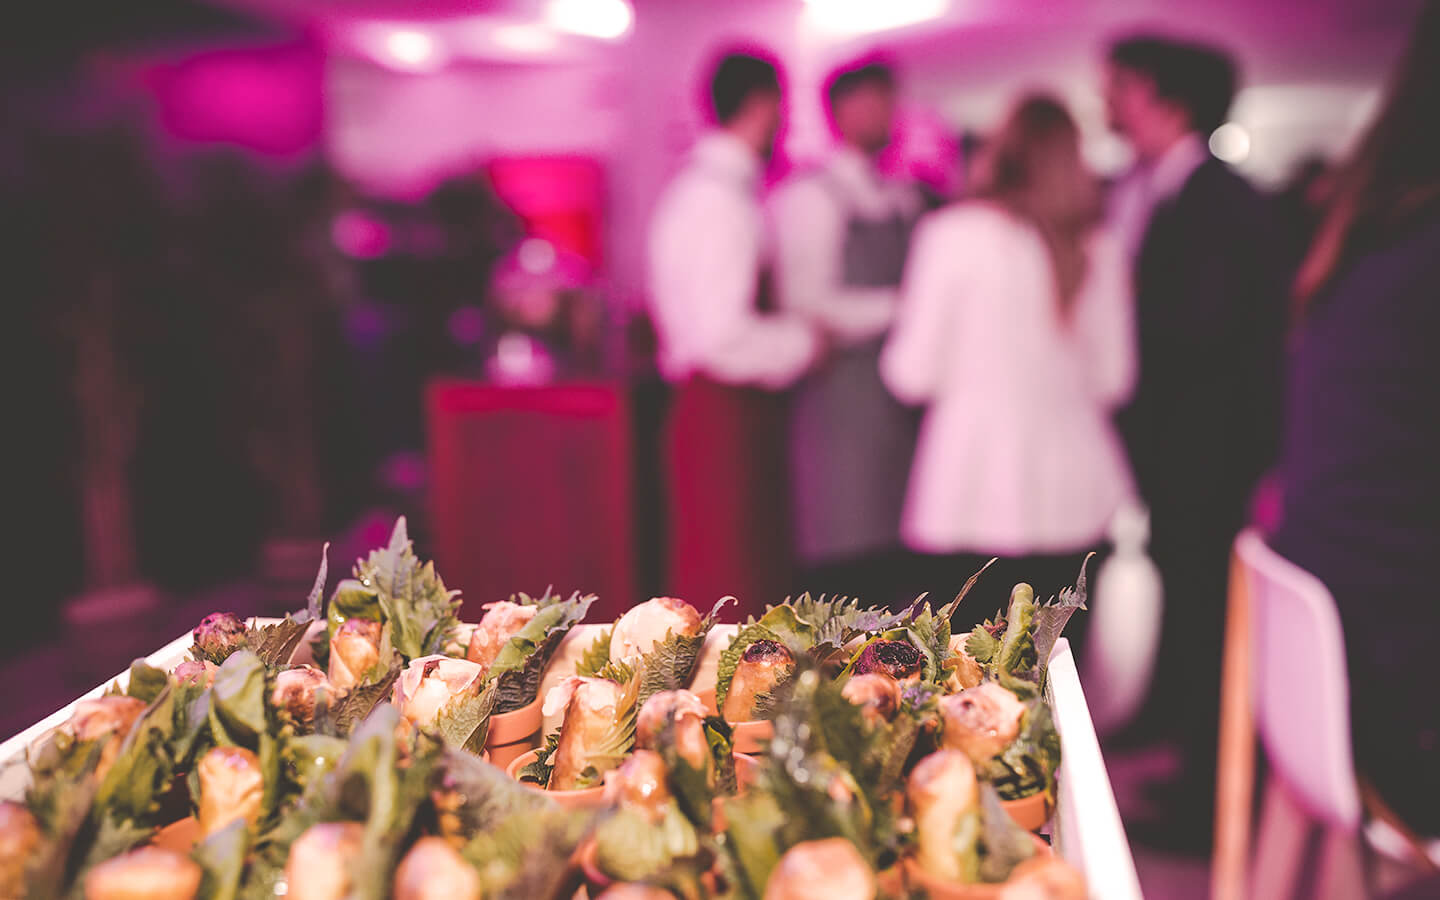 Agacatering catering eventos corporativos galeria05